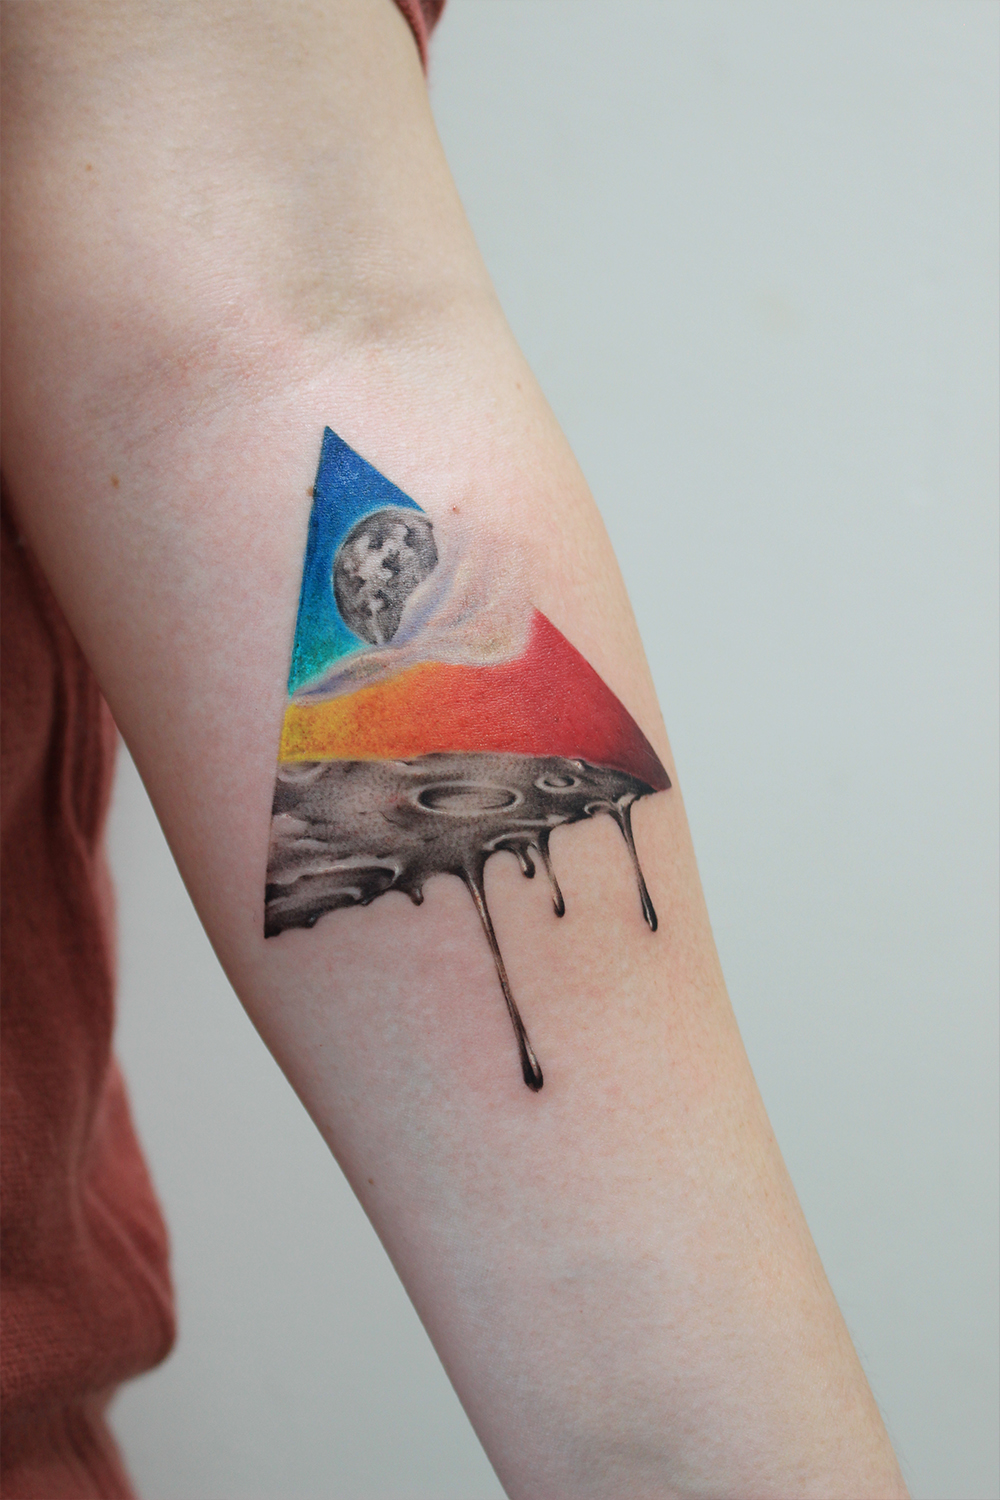 dreamhand-tattoo-Iriss-18-20190720050350590